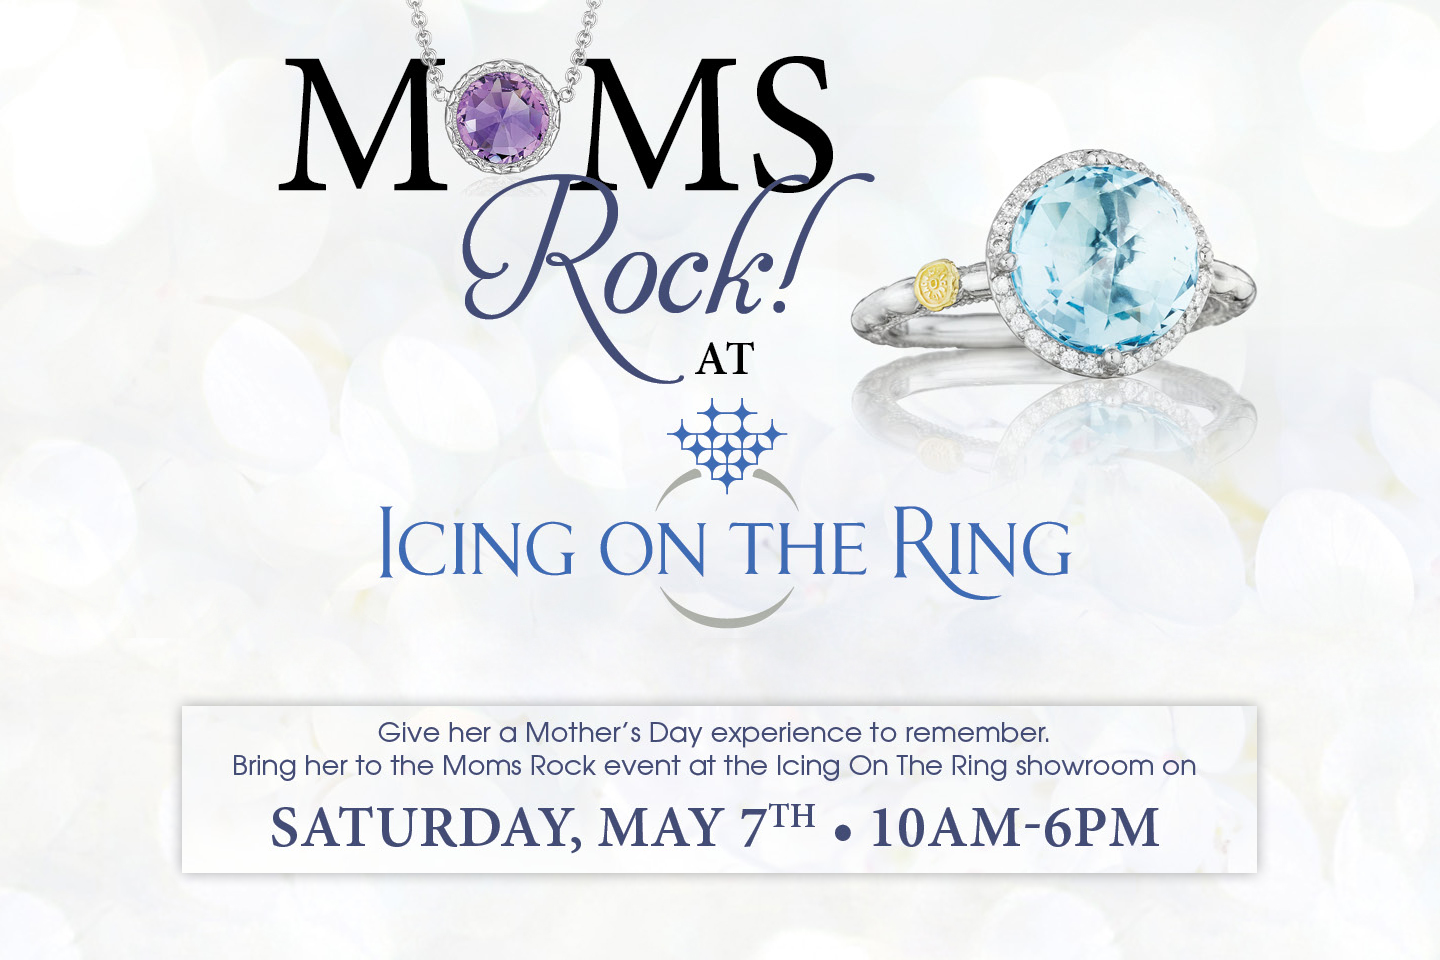 Moms Rock Event at Icing On The Ring